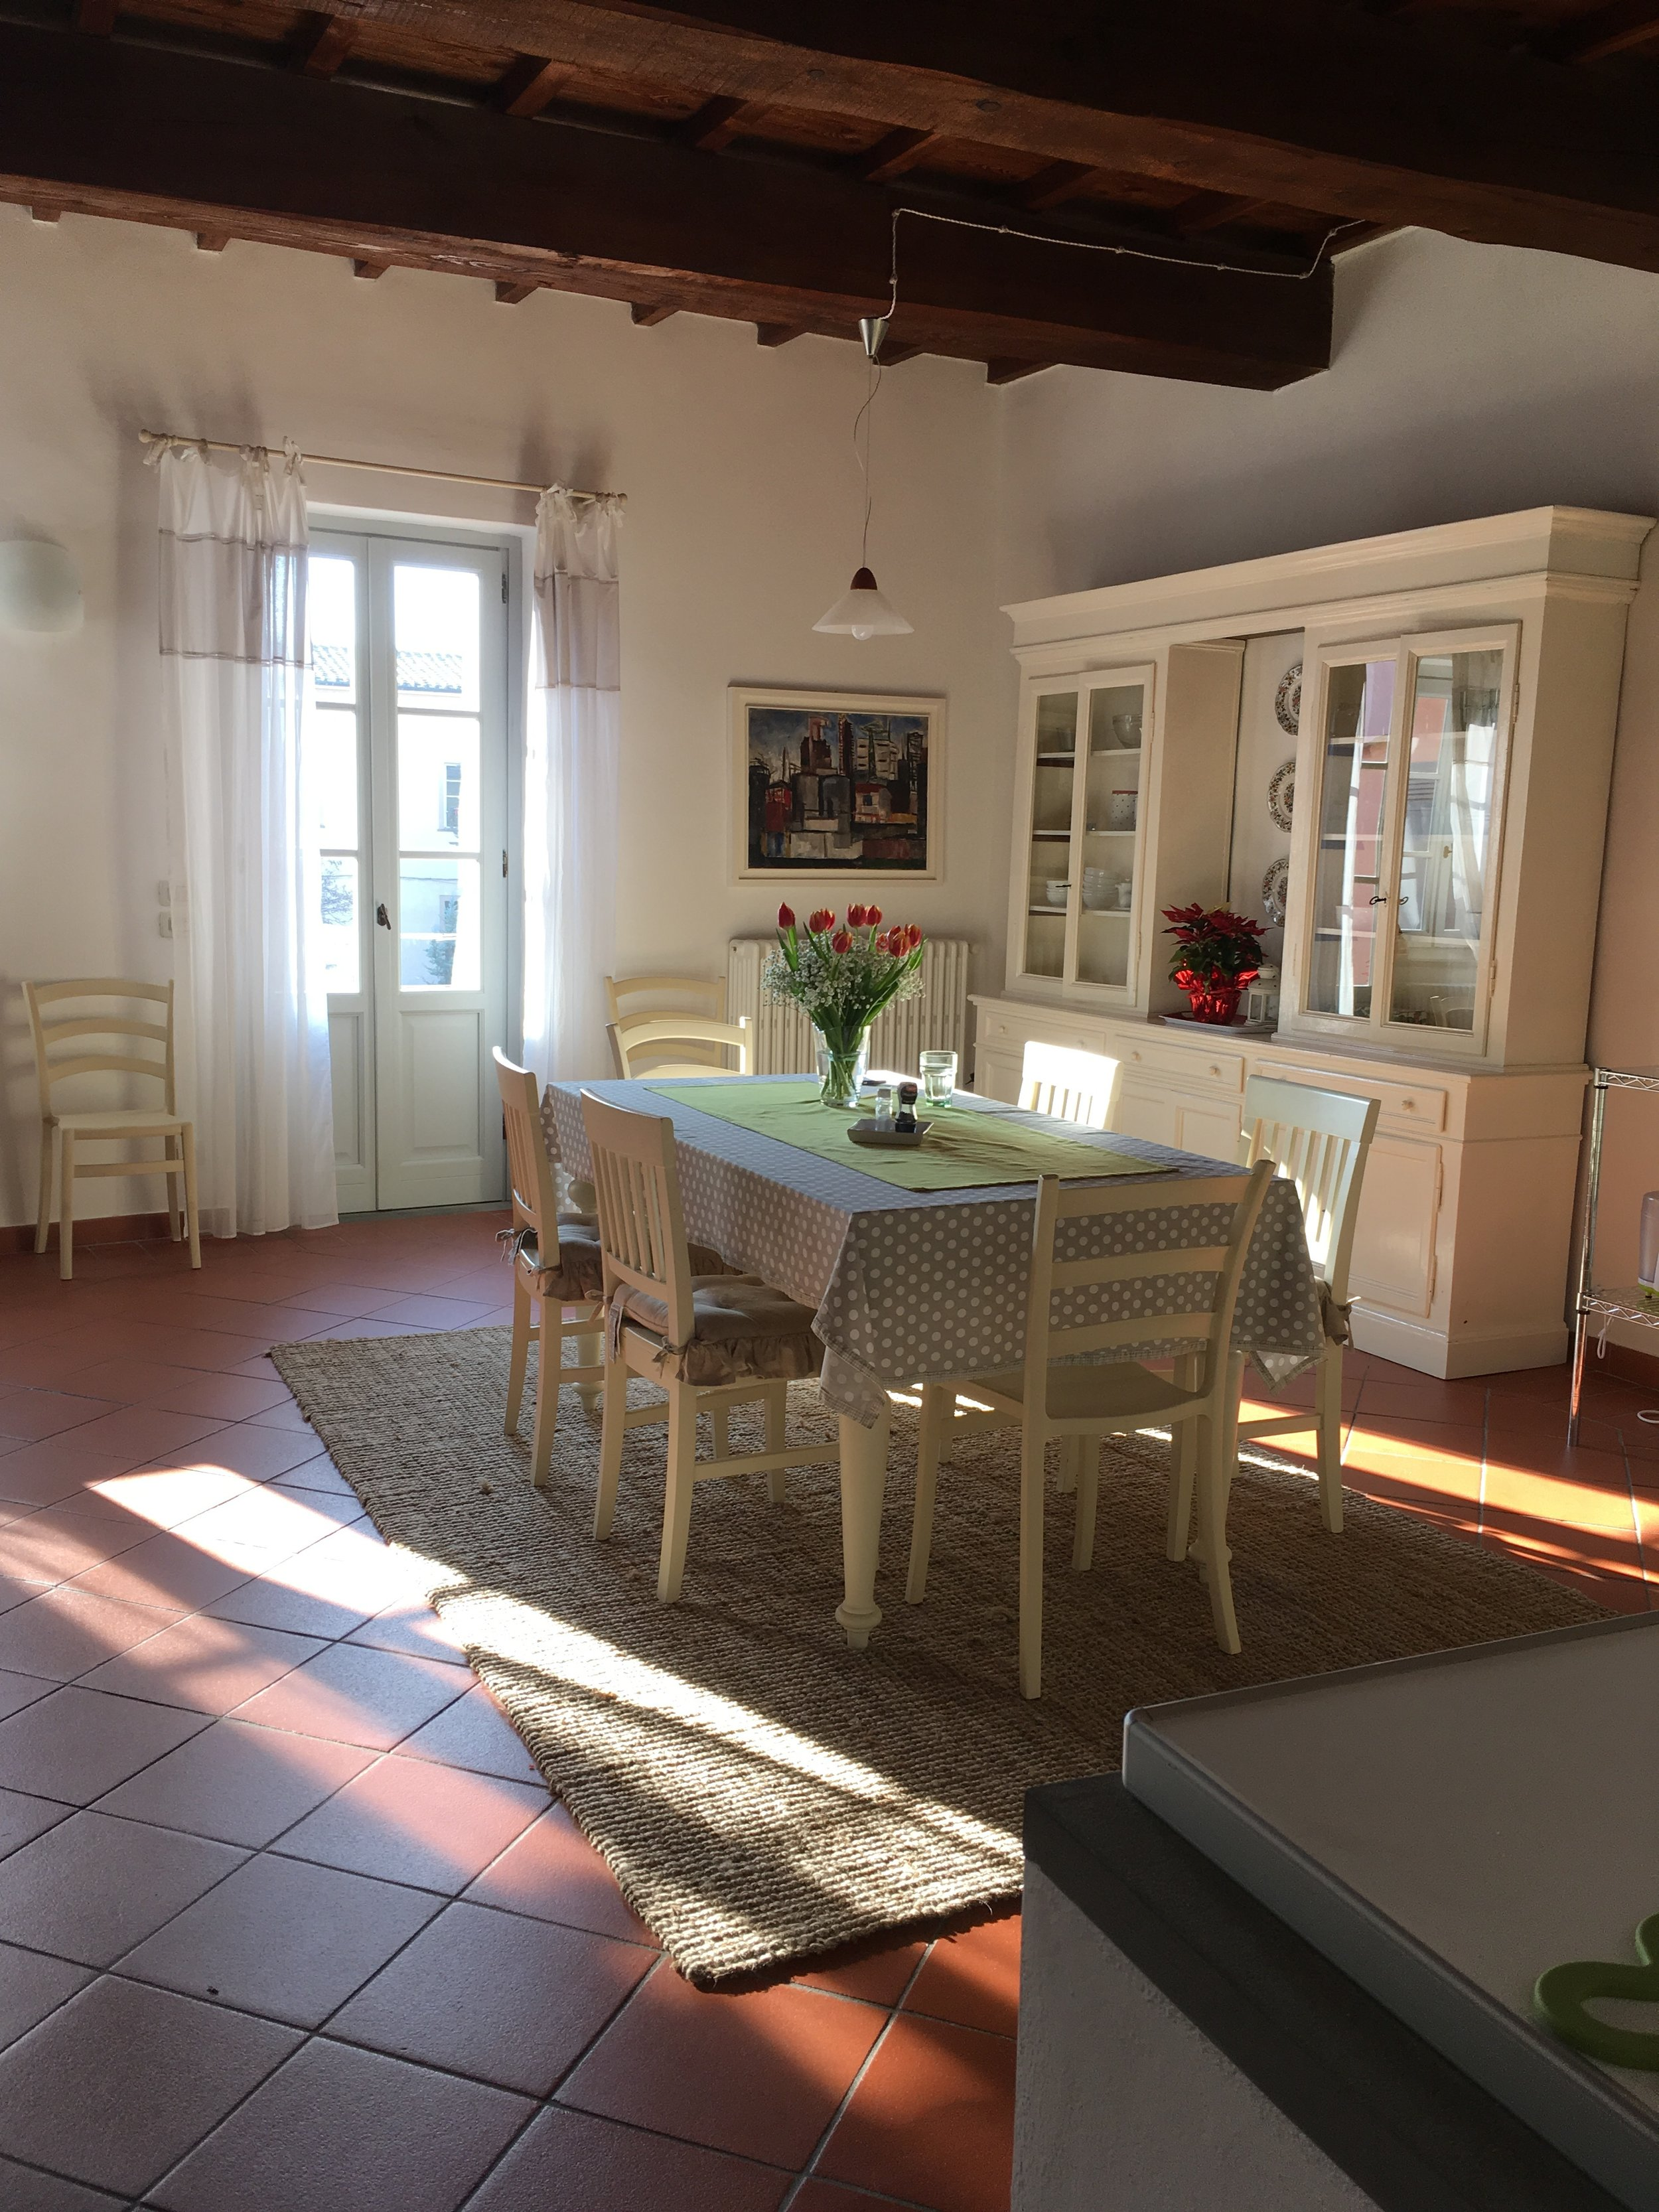 Can you feel the sun streaming in through the windows, even in cold January?